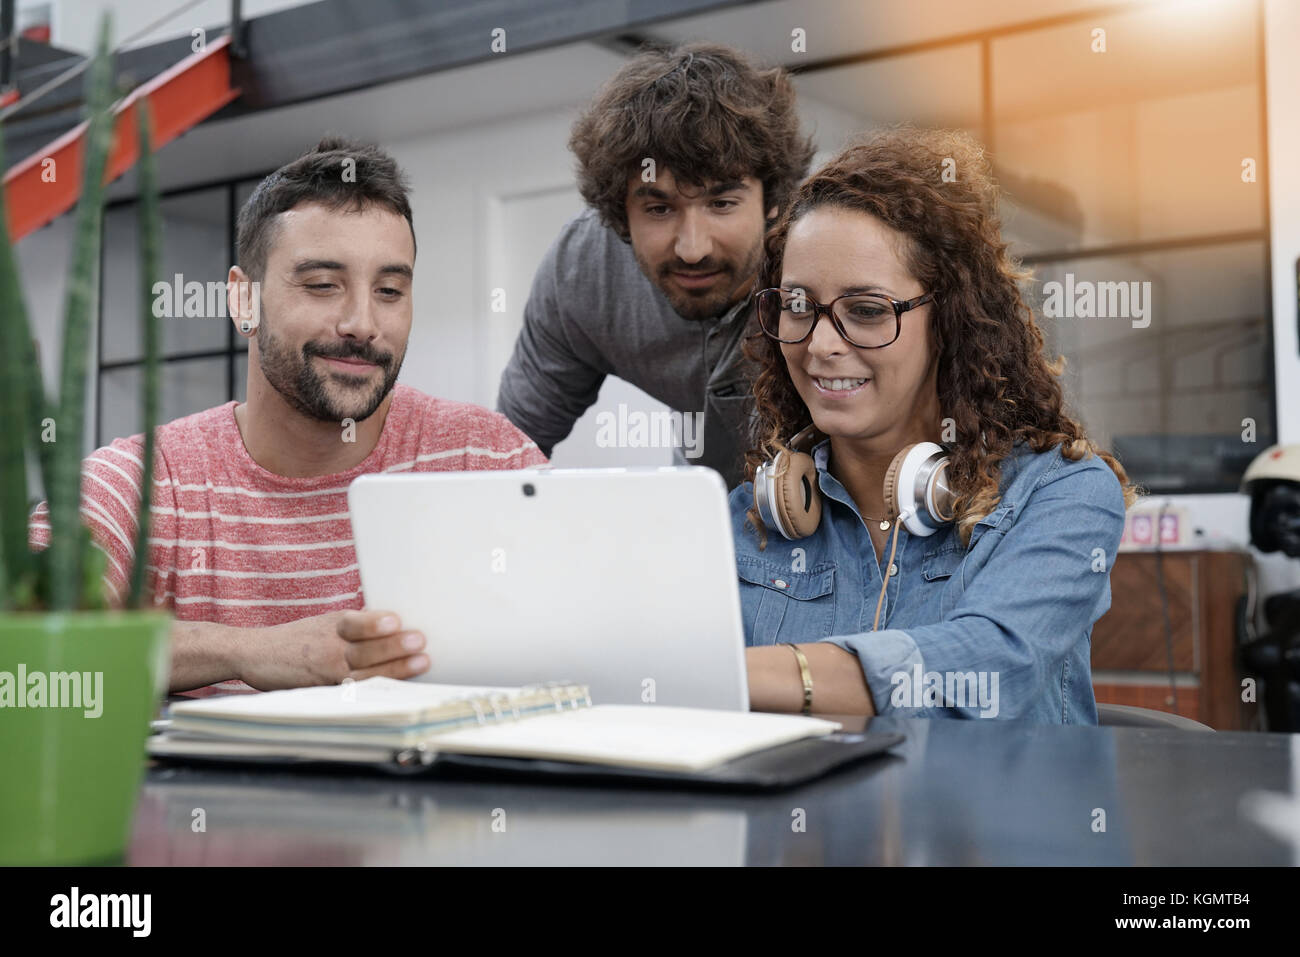 Young entrepreneurs working on digital tablet - Stock Image